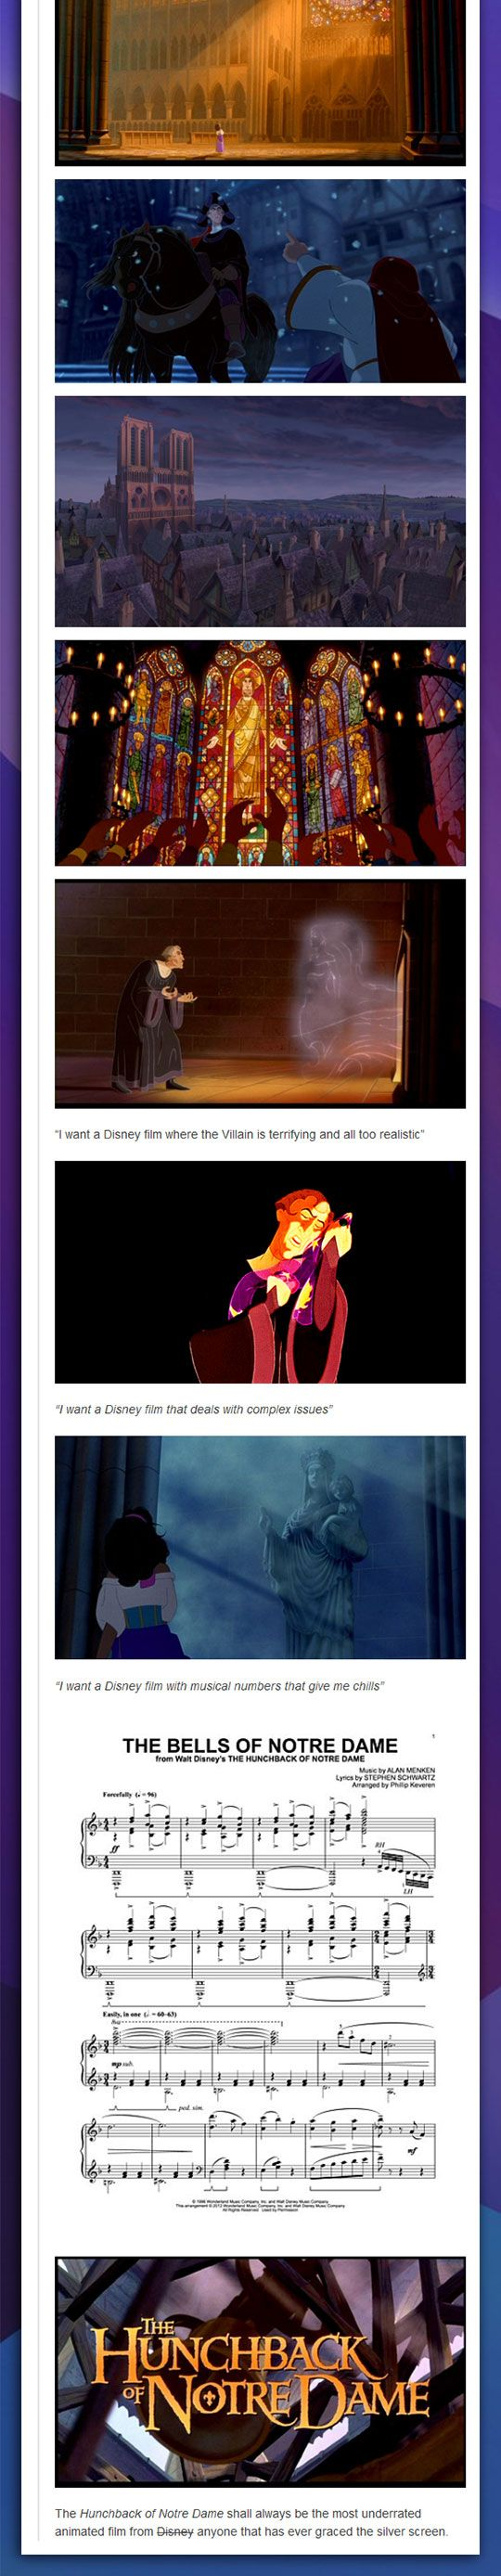 THAT MAKES NO SENSE! IT'S ONE OF THE BEST FILMS DISNEY EVER MADE!!